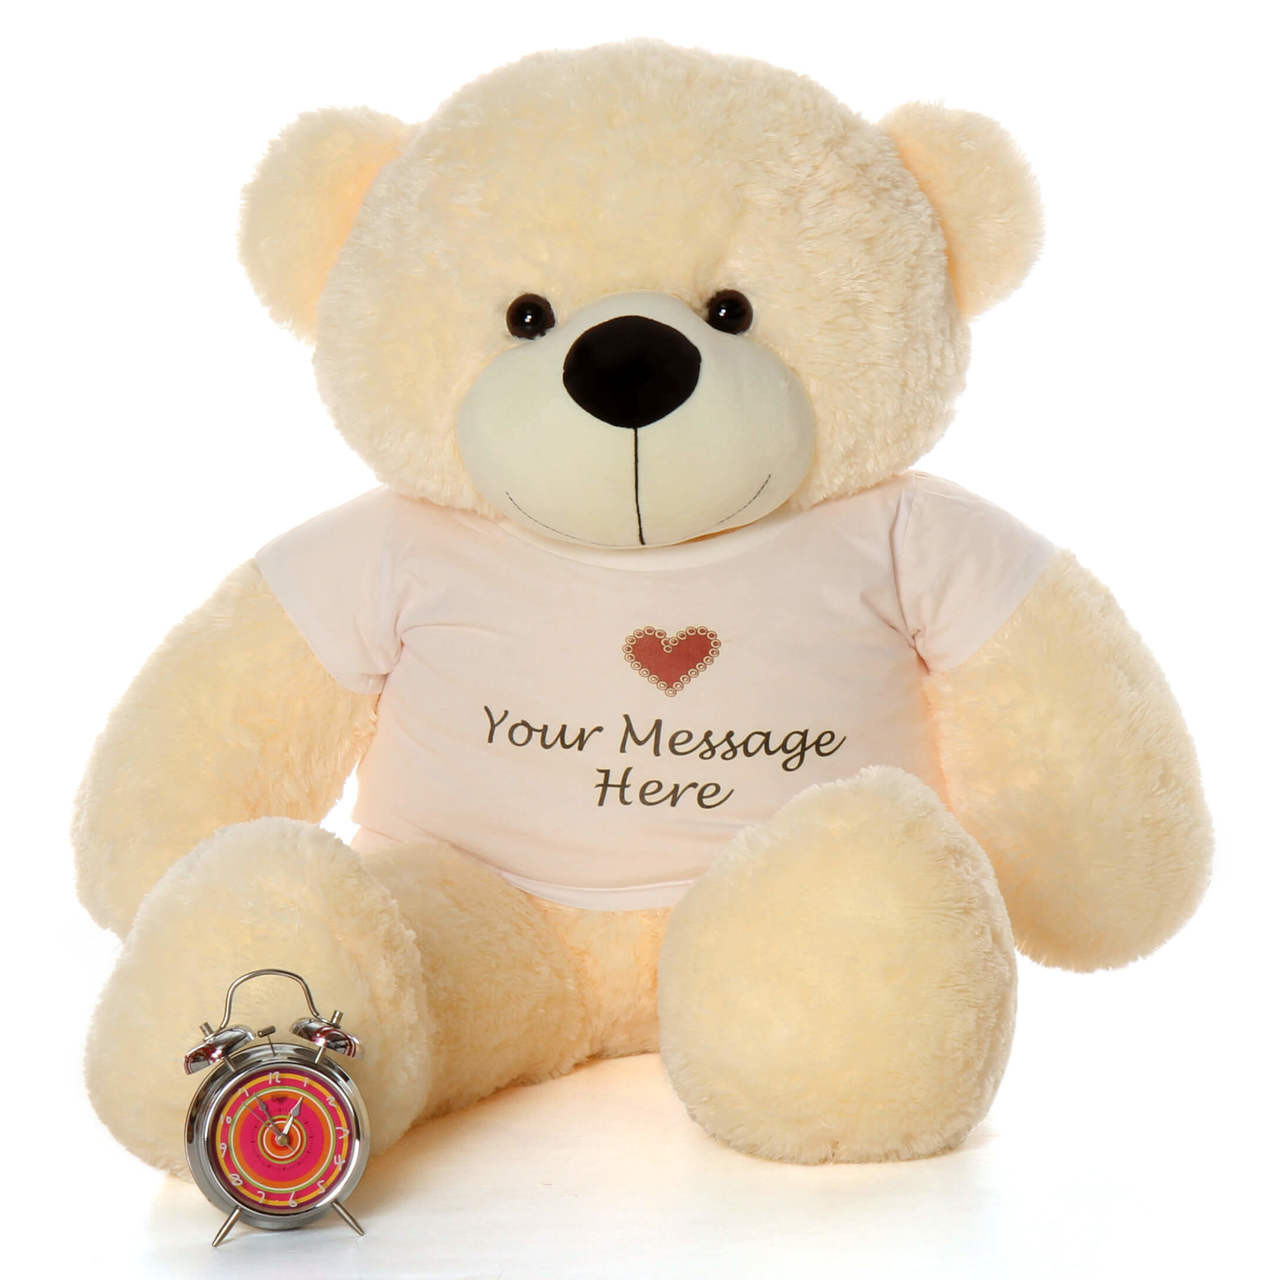 4 ft huge teddy bear vanilla cuddles that will bring lots of love to share